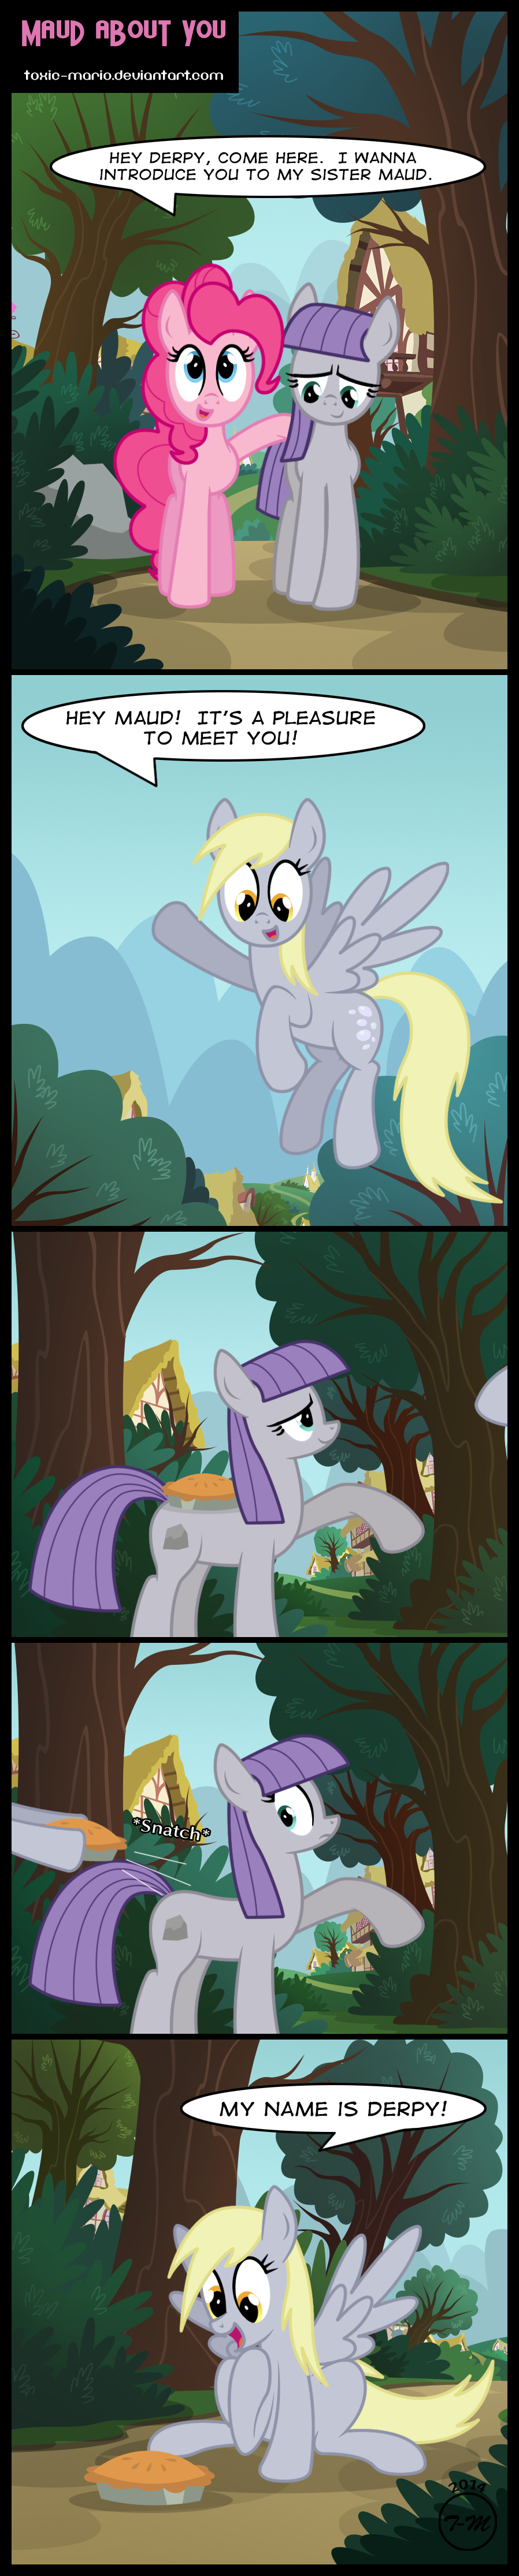 Maud About You. Pre episode comic on Maud Pie episode. On my deviantart. http://toxic-mario.deviantart.com/art/Maud-About-You-440514066.. Maud looks way too happy...